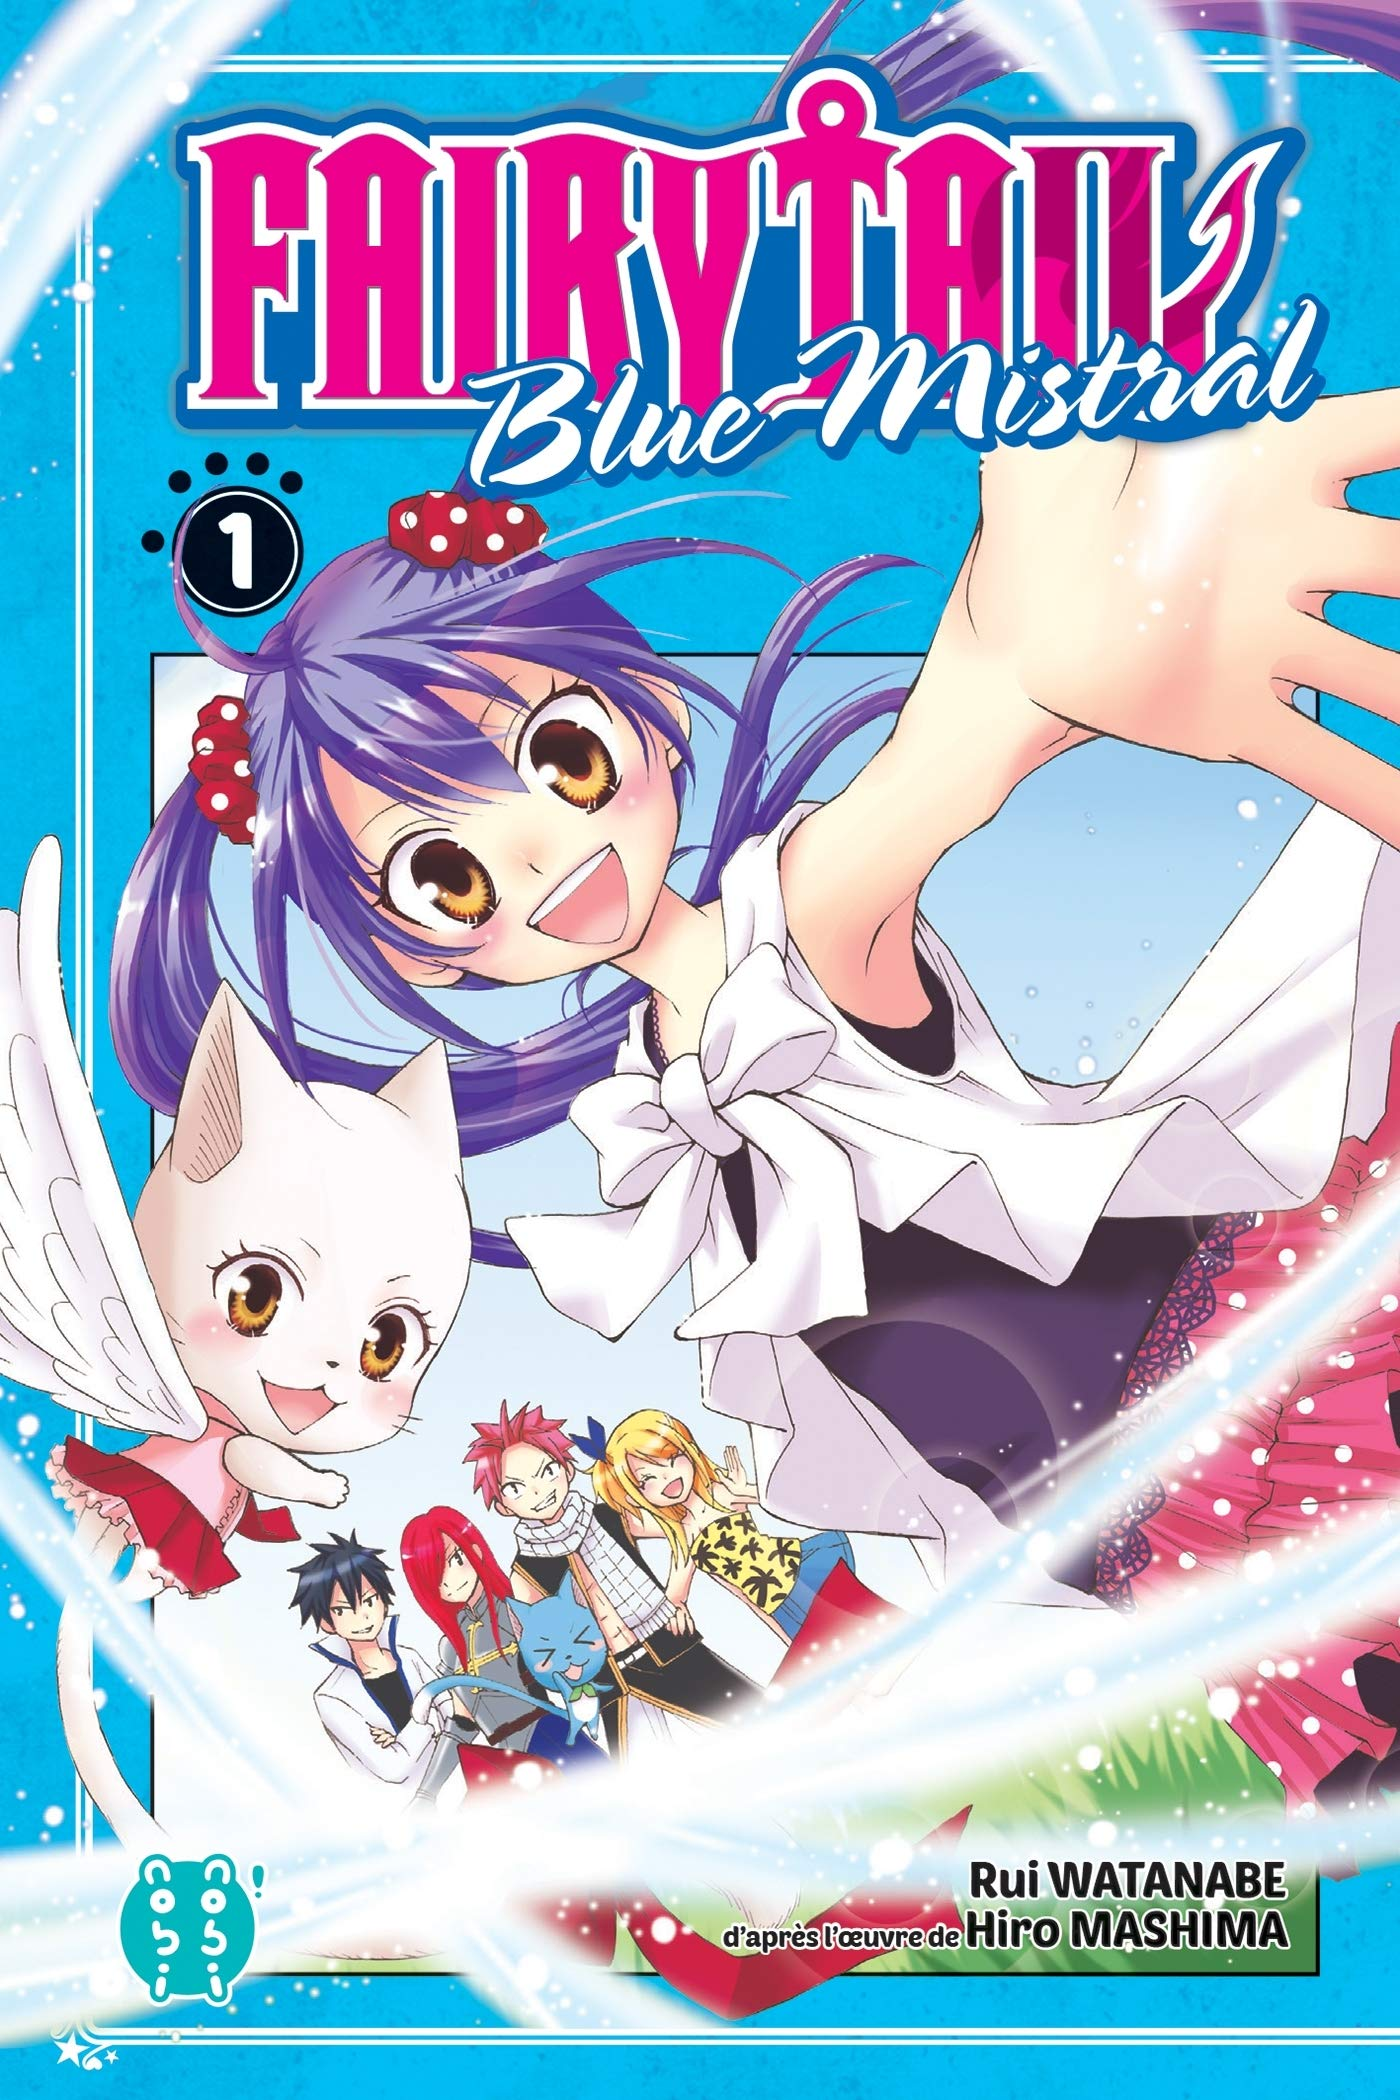 Fairy Tail - Blue mistral 1